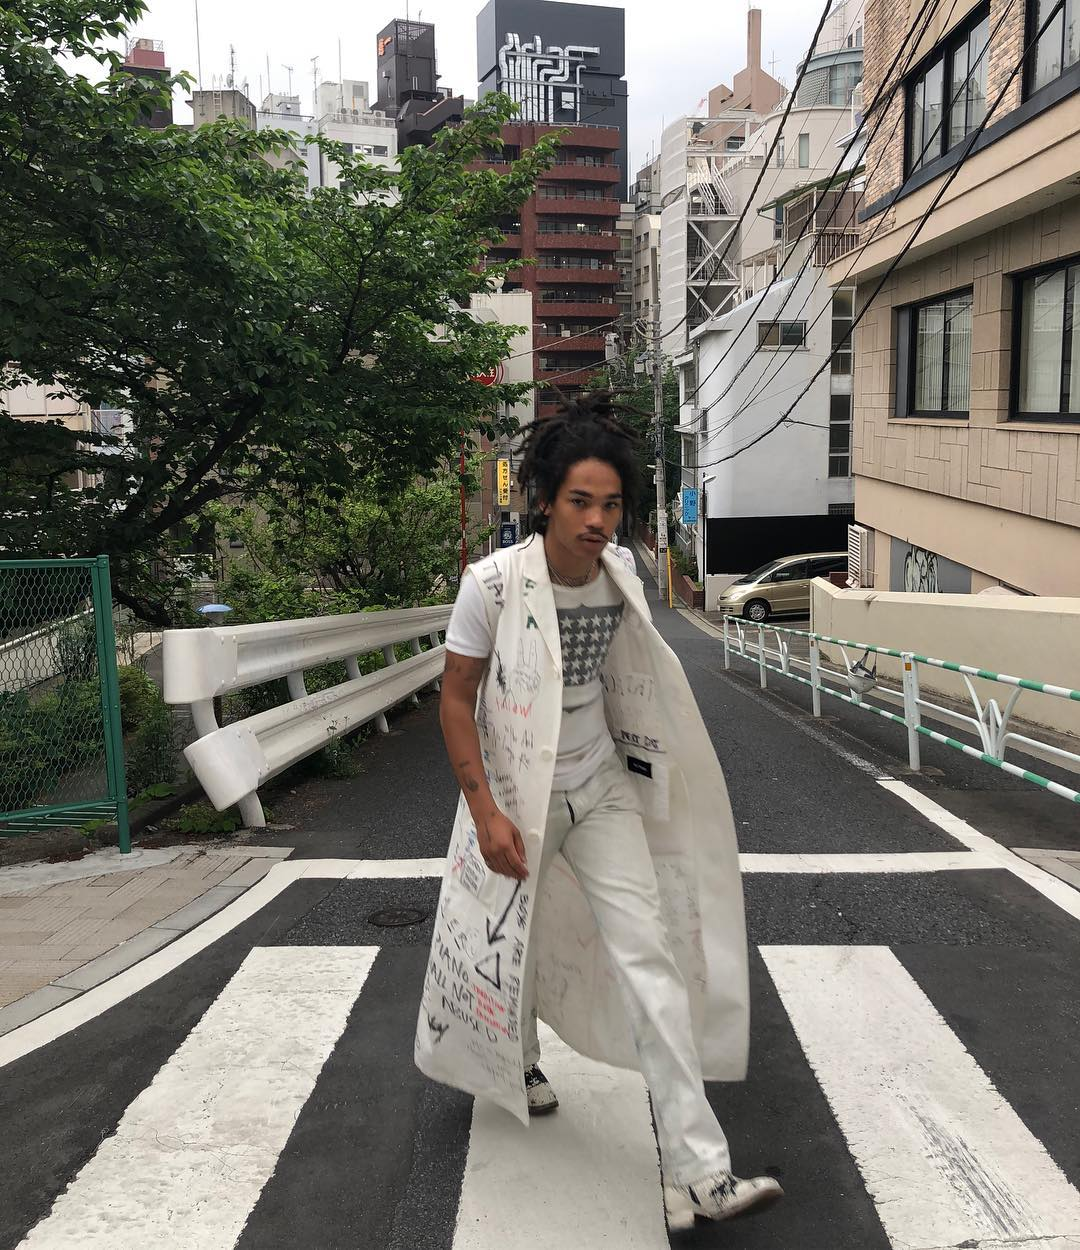 SPOTTED: Luka Sabbat Ties Raf Simons' Lab Coat into an All-White Fit